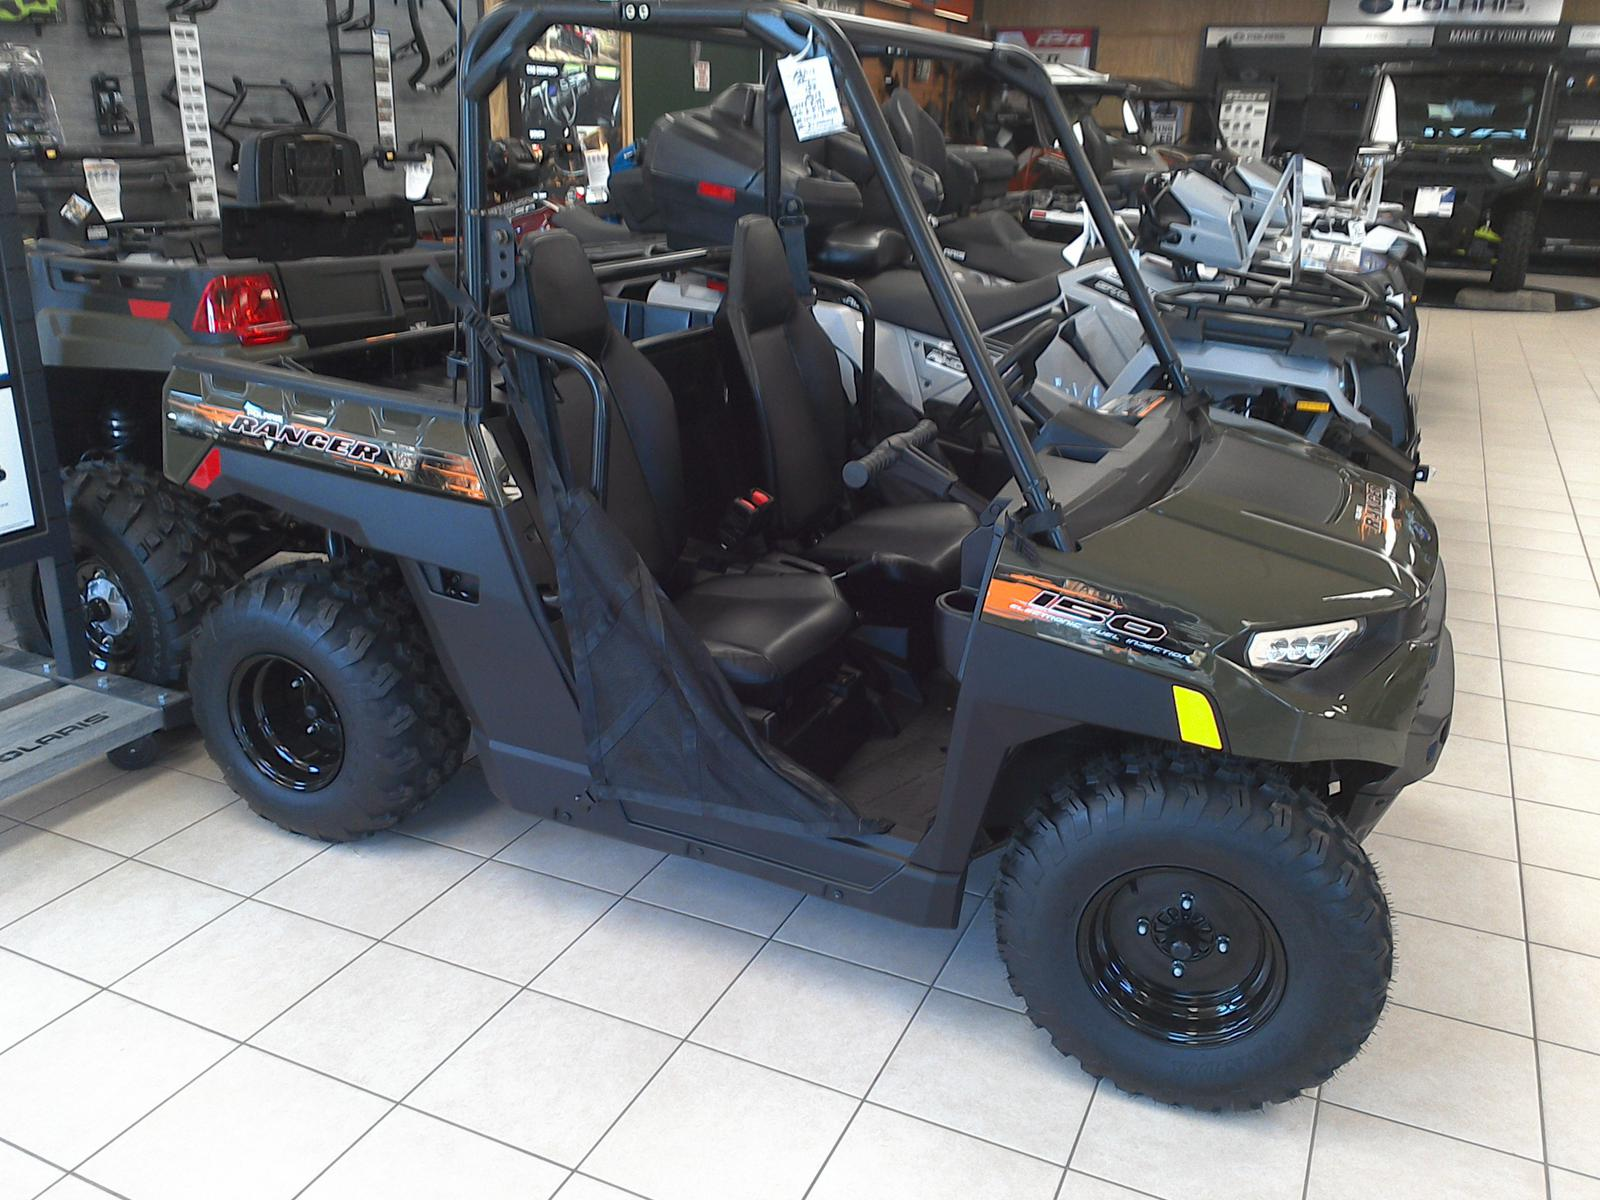 2019 polaris industries ranger� 150 efi - sage green